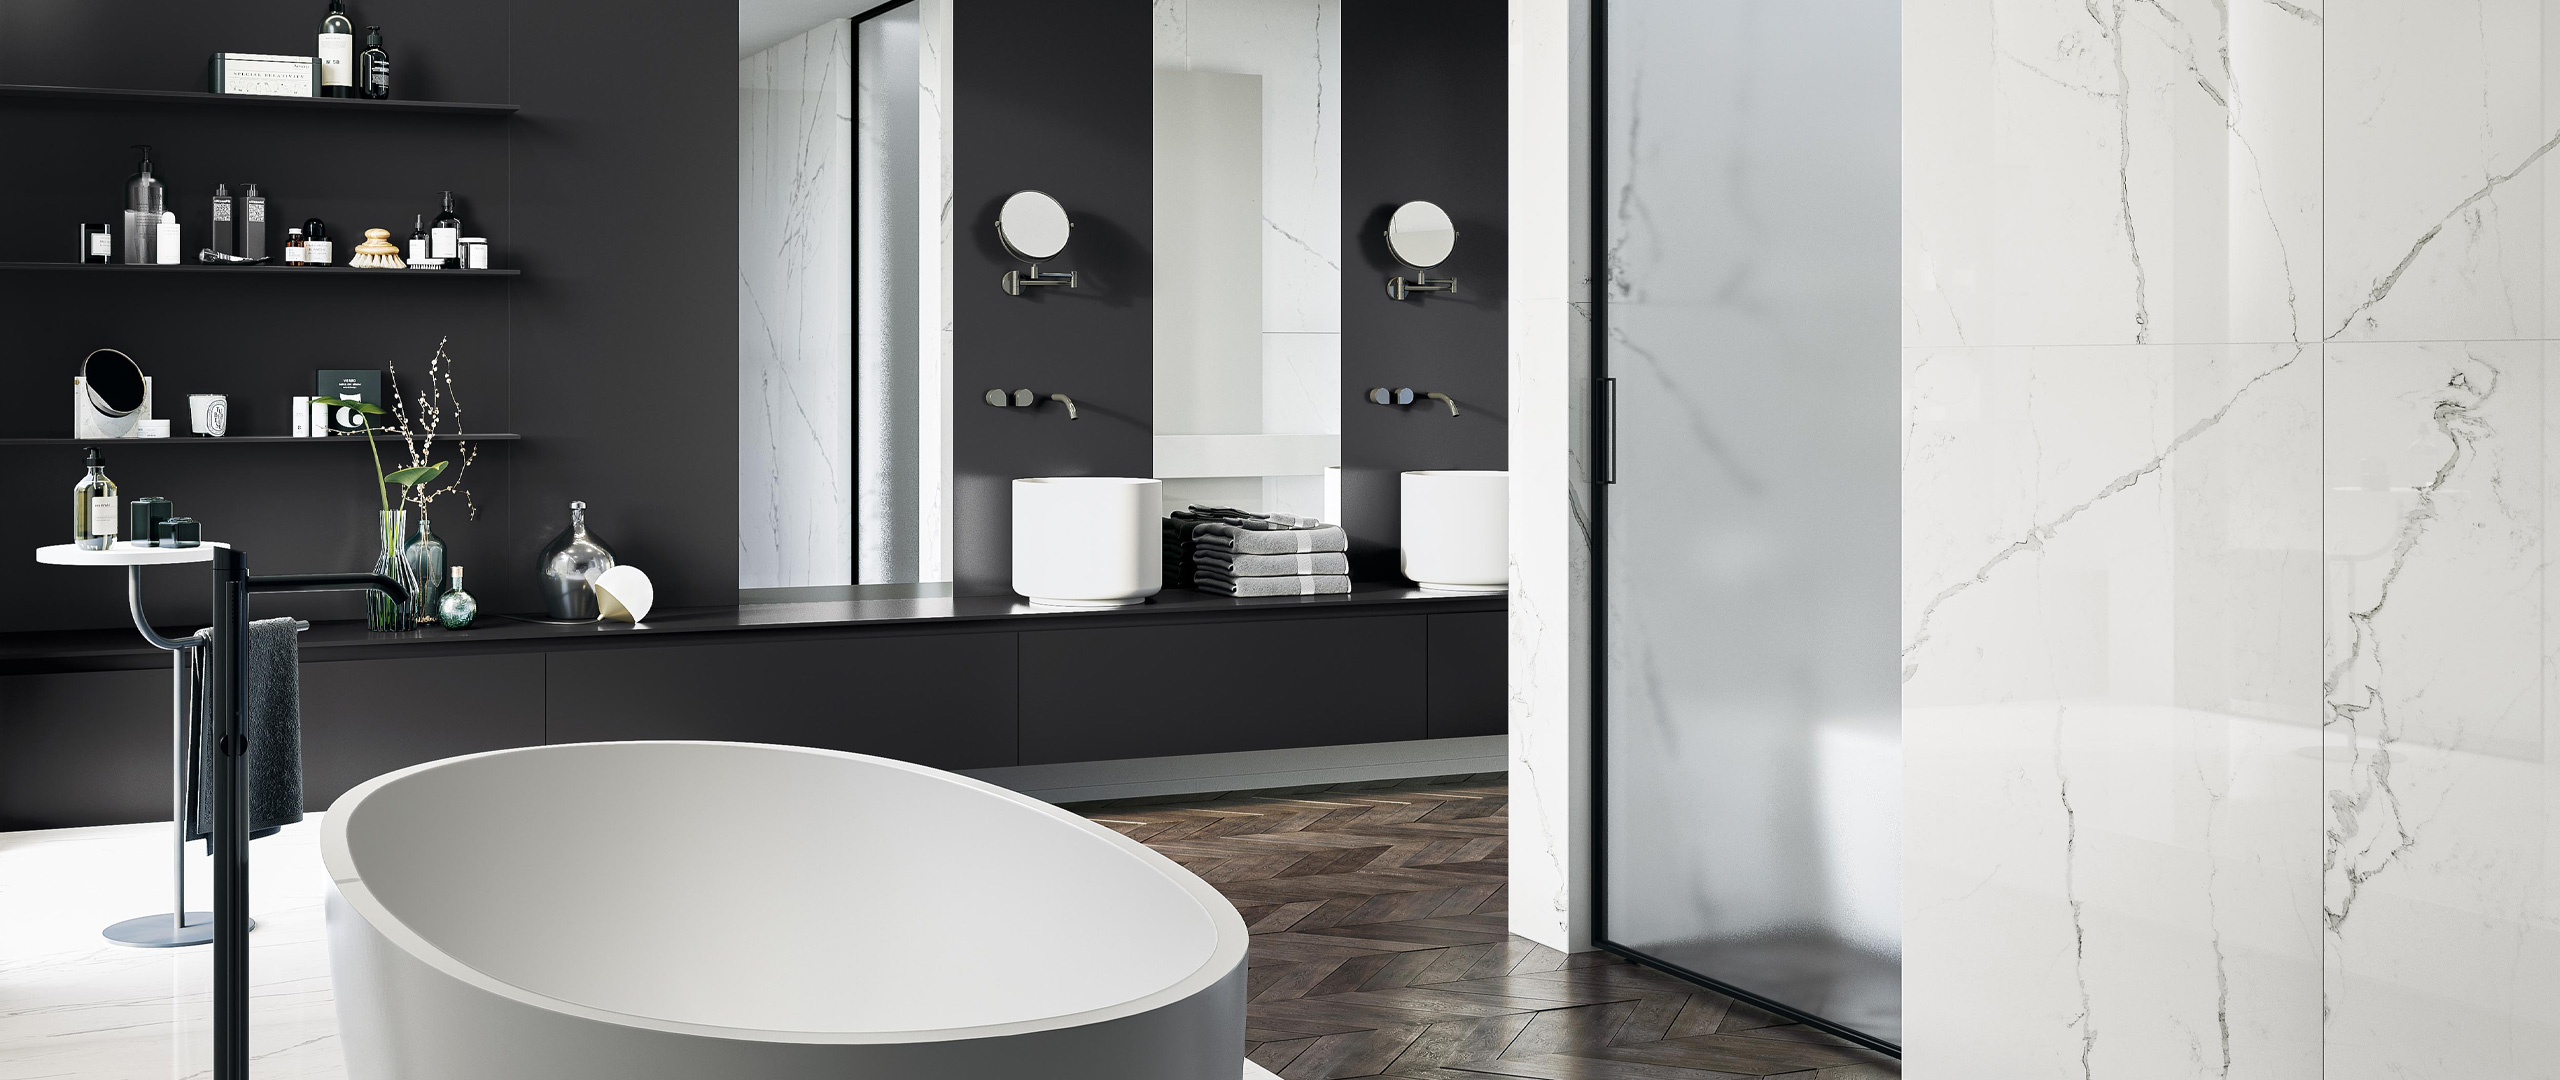 arredobagno-myproject-05